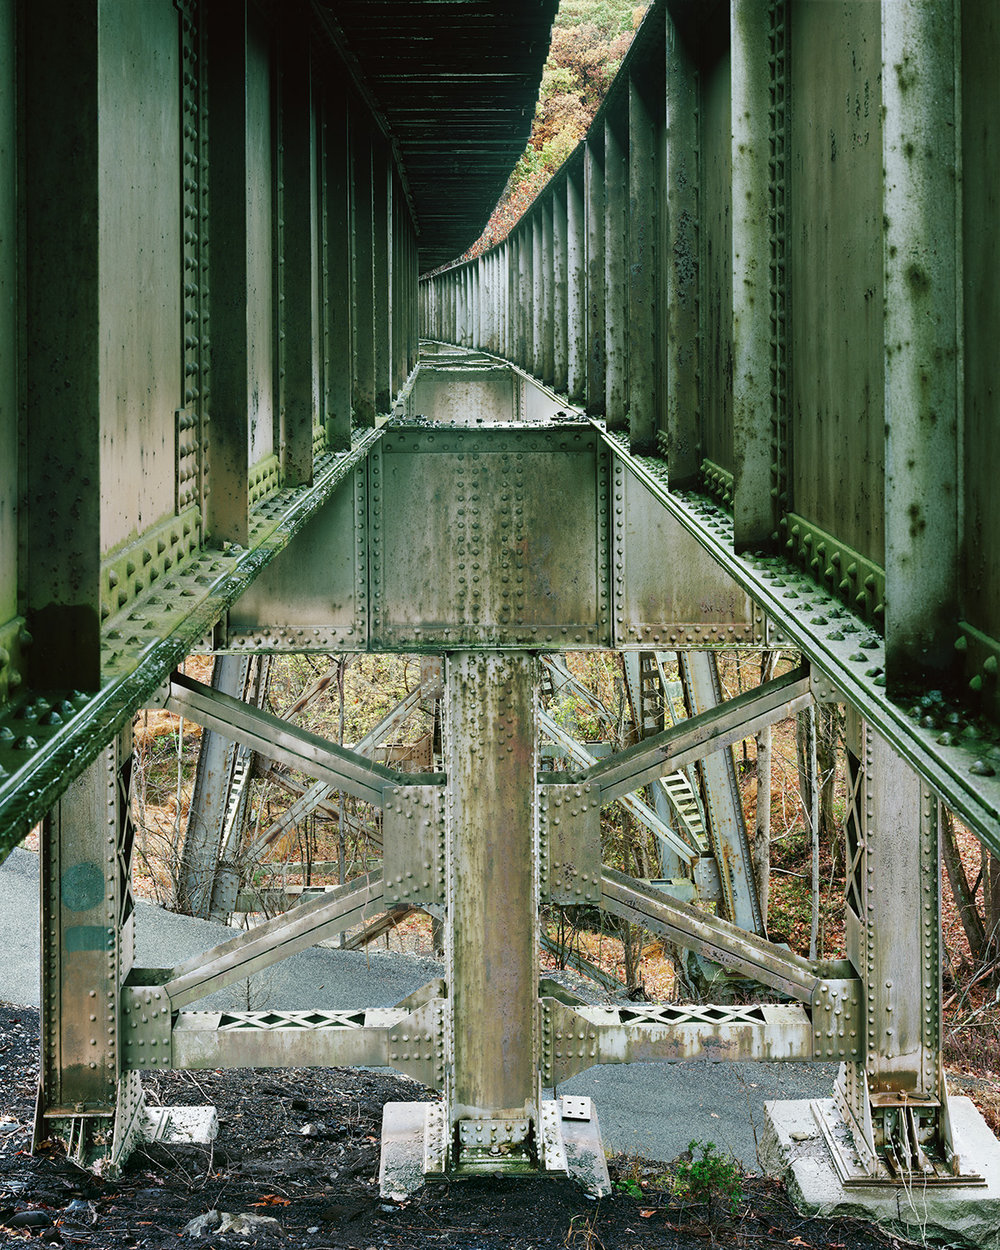 McCoy Ferry Bridge, Washington County, MD